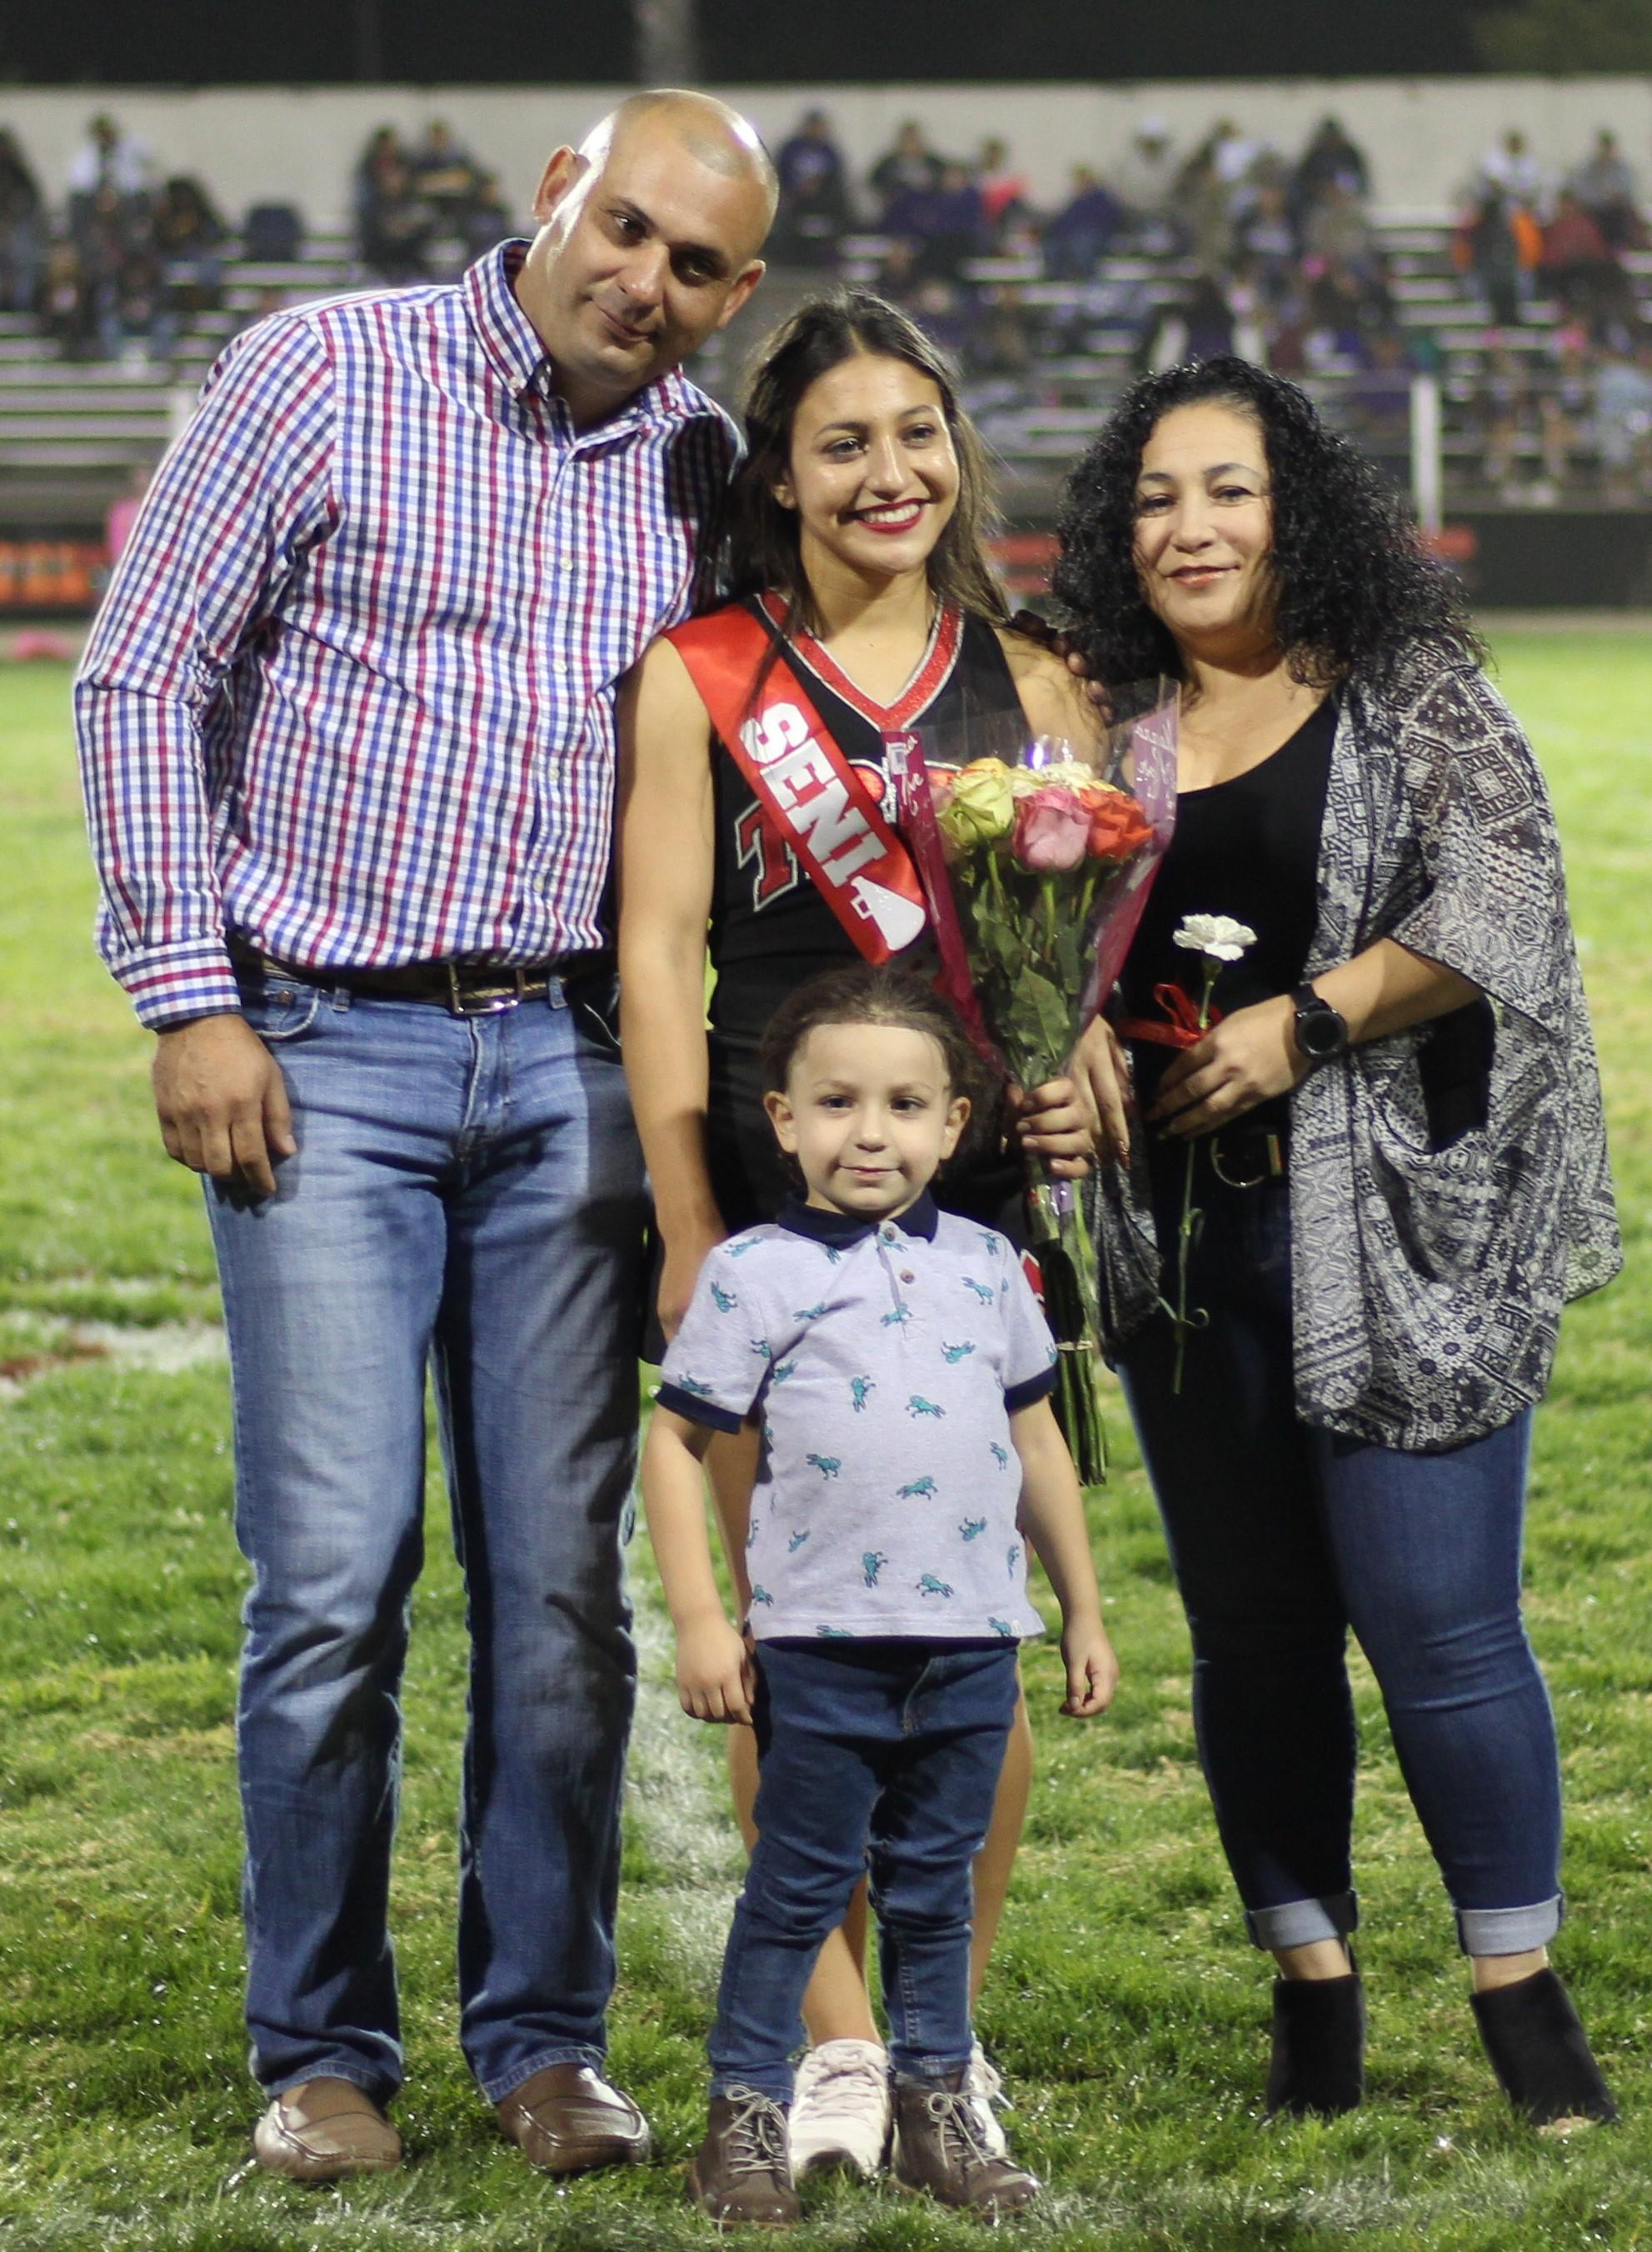 Senior cheerleader Bella Martinez and her escorts.